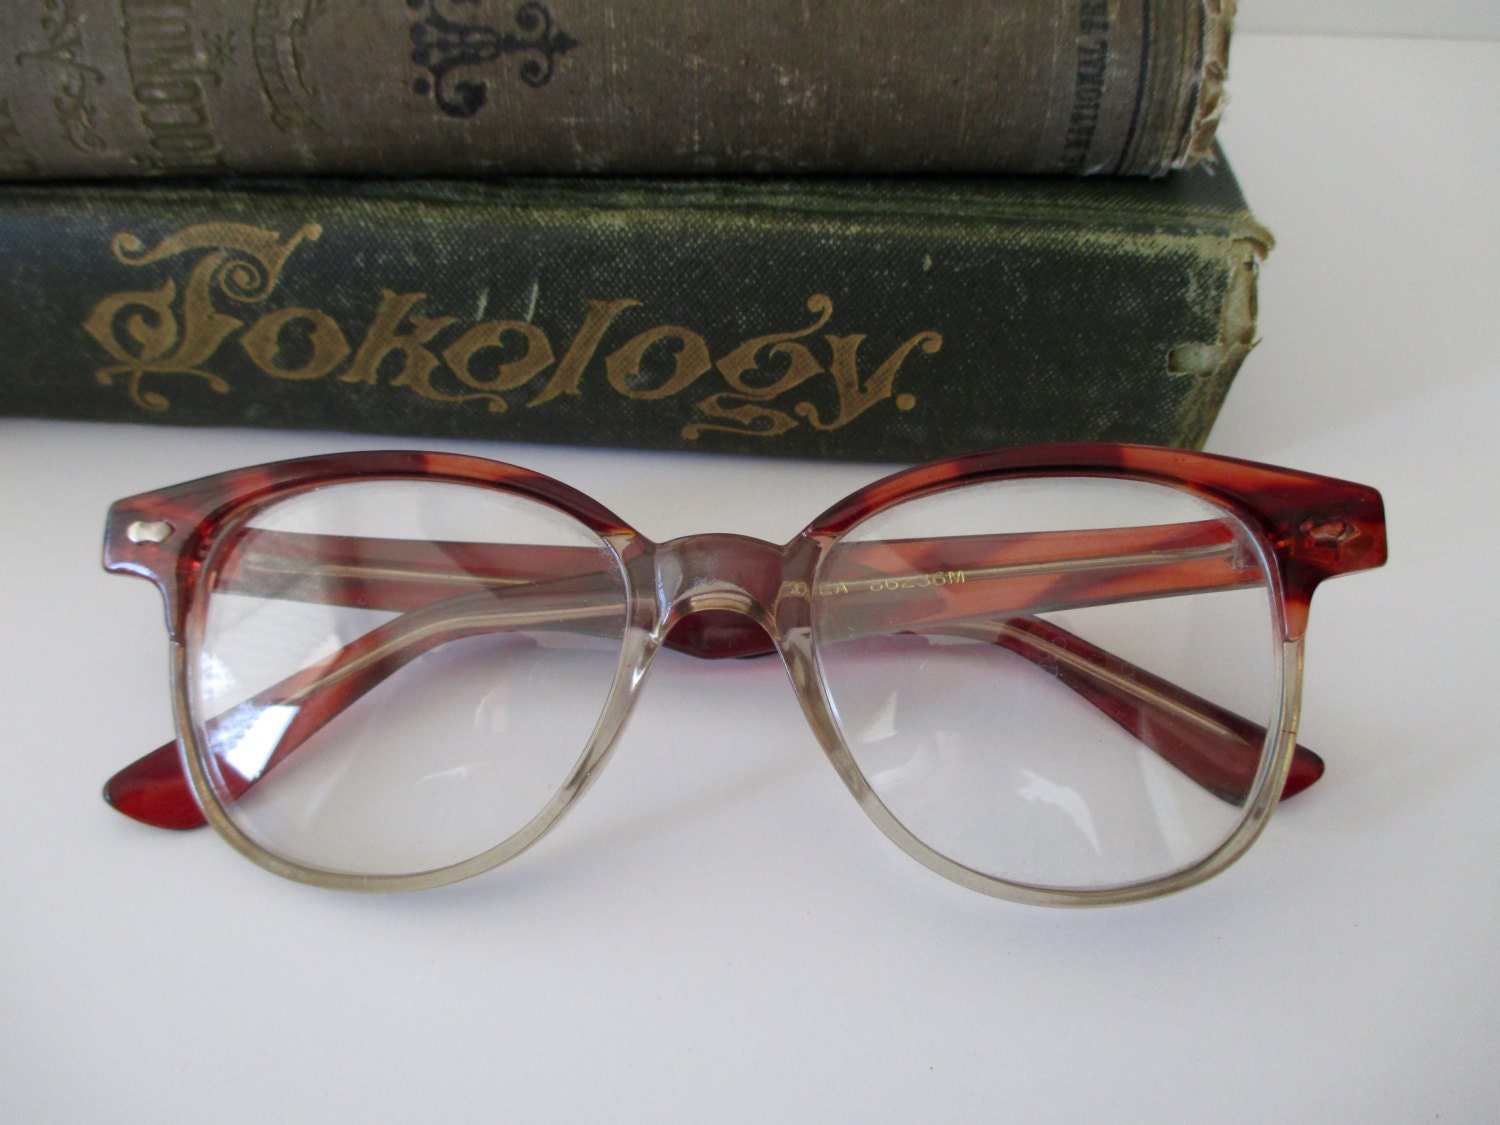 Vintage Tortoise Shell Eyeglass Frames : vintage tortoise shell eyeglasses disguise ready to wear